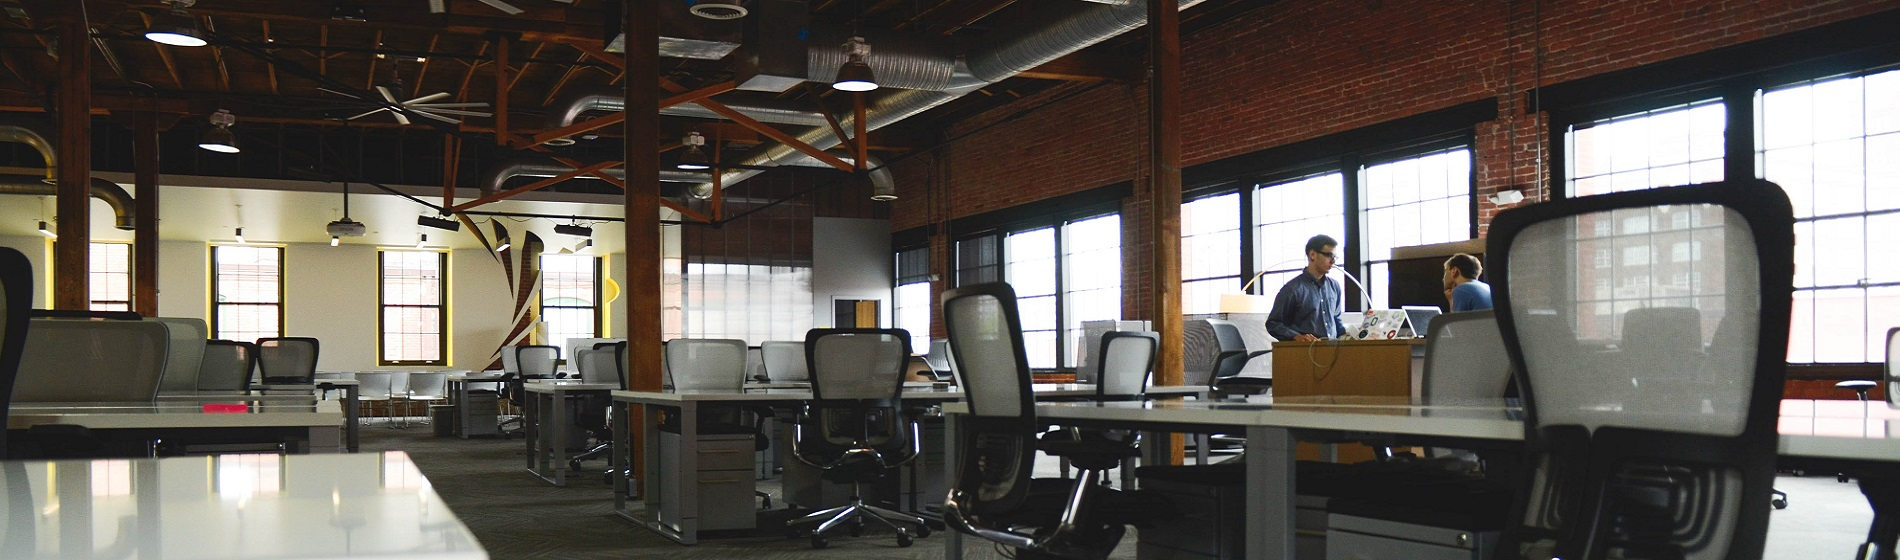 long view of industrial office space with desks and chairs